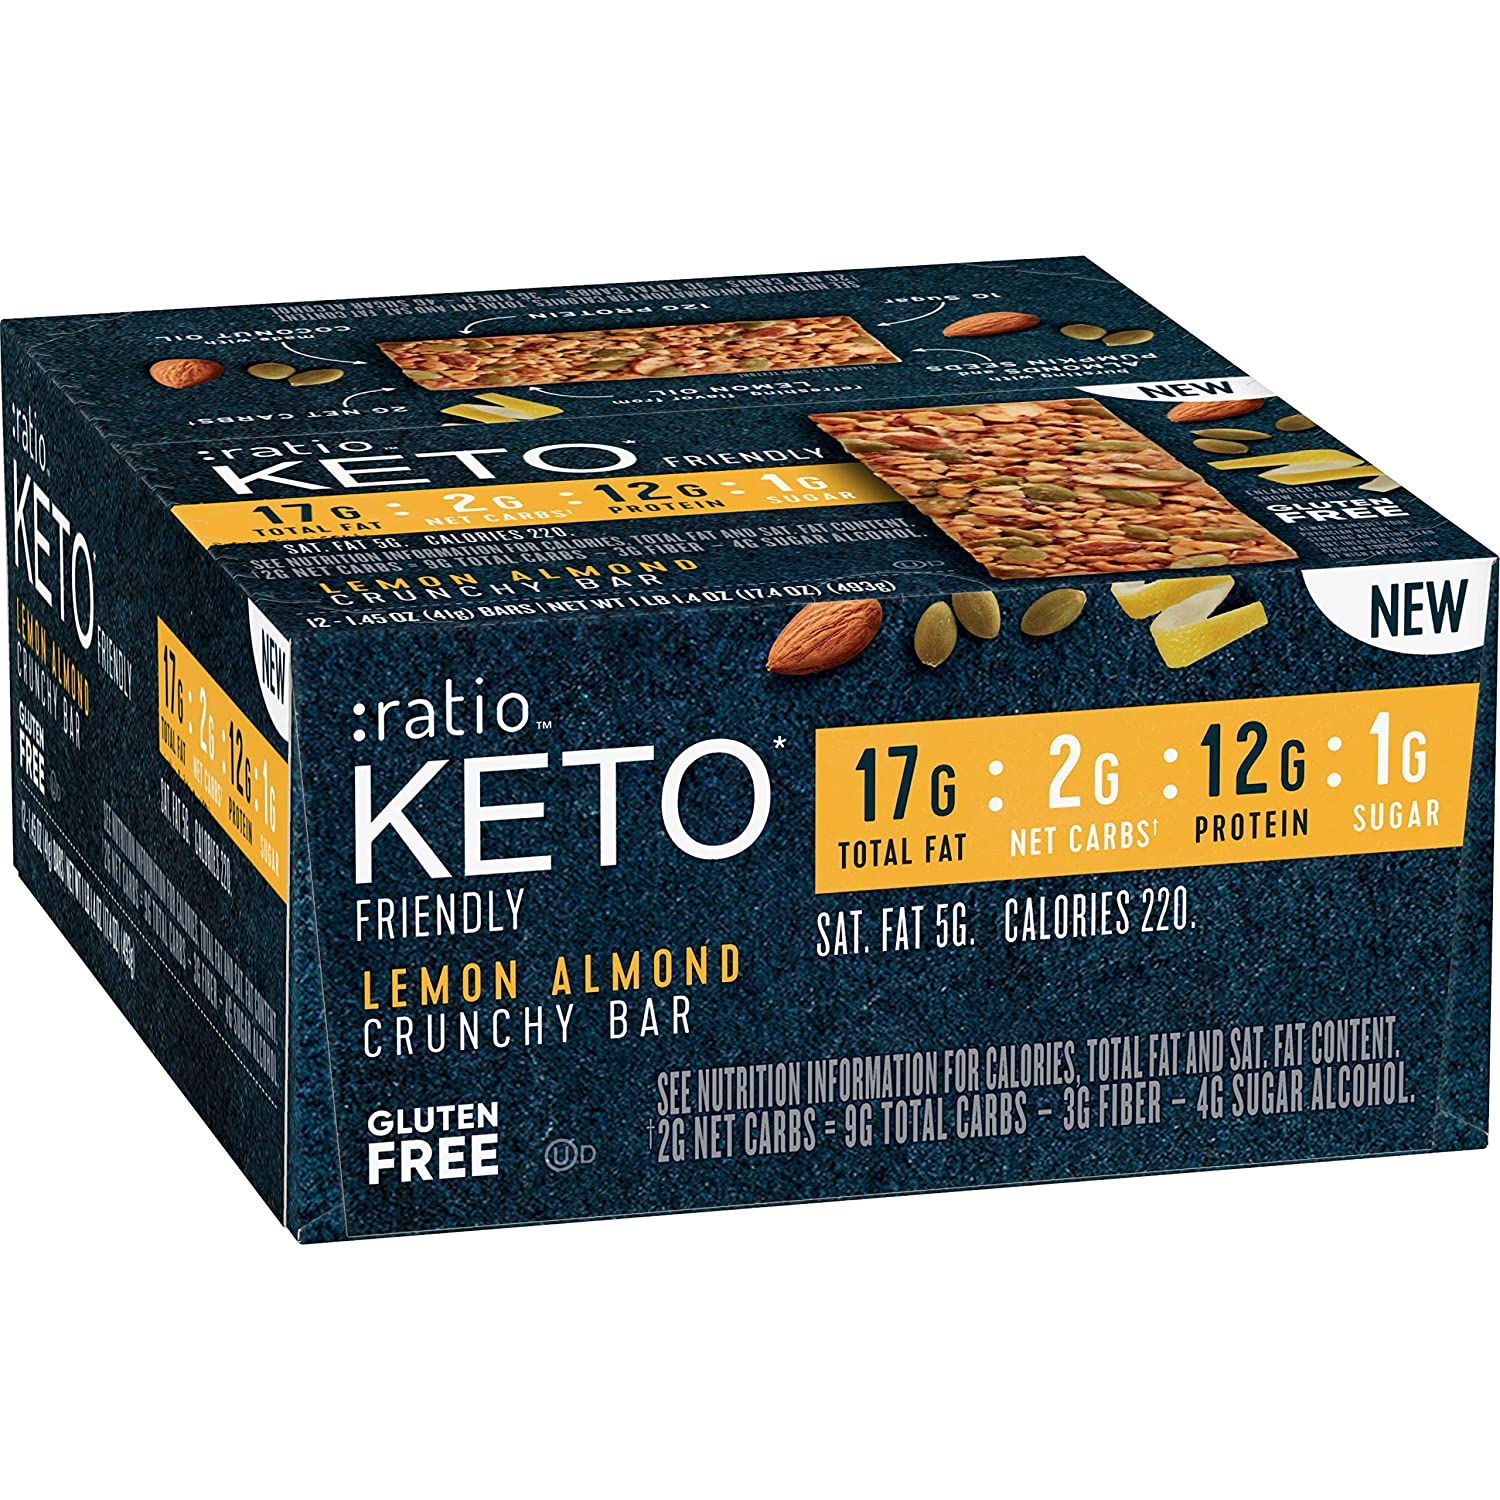 Free Amazon Promo Code 2020 for KETO friendly Protein Bar